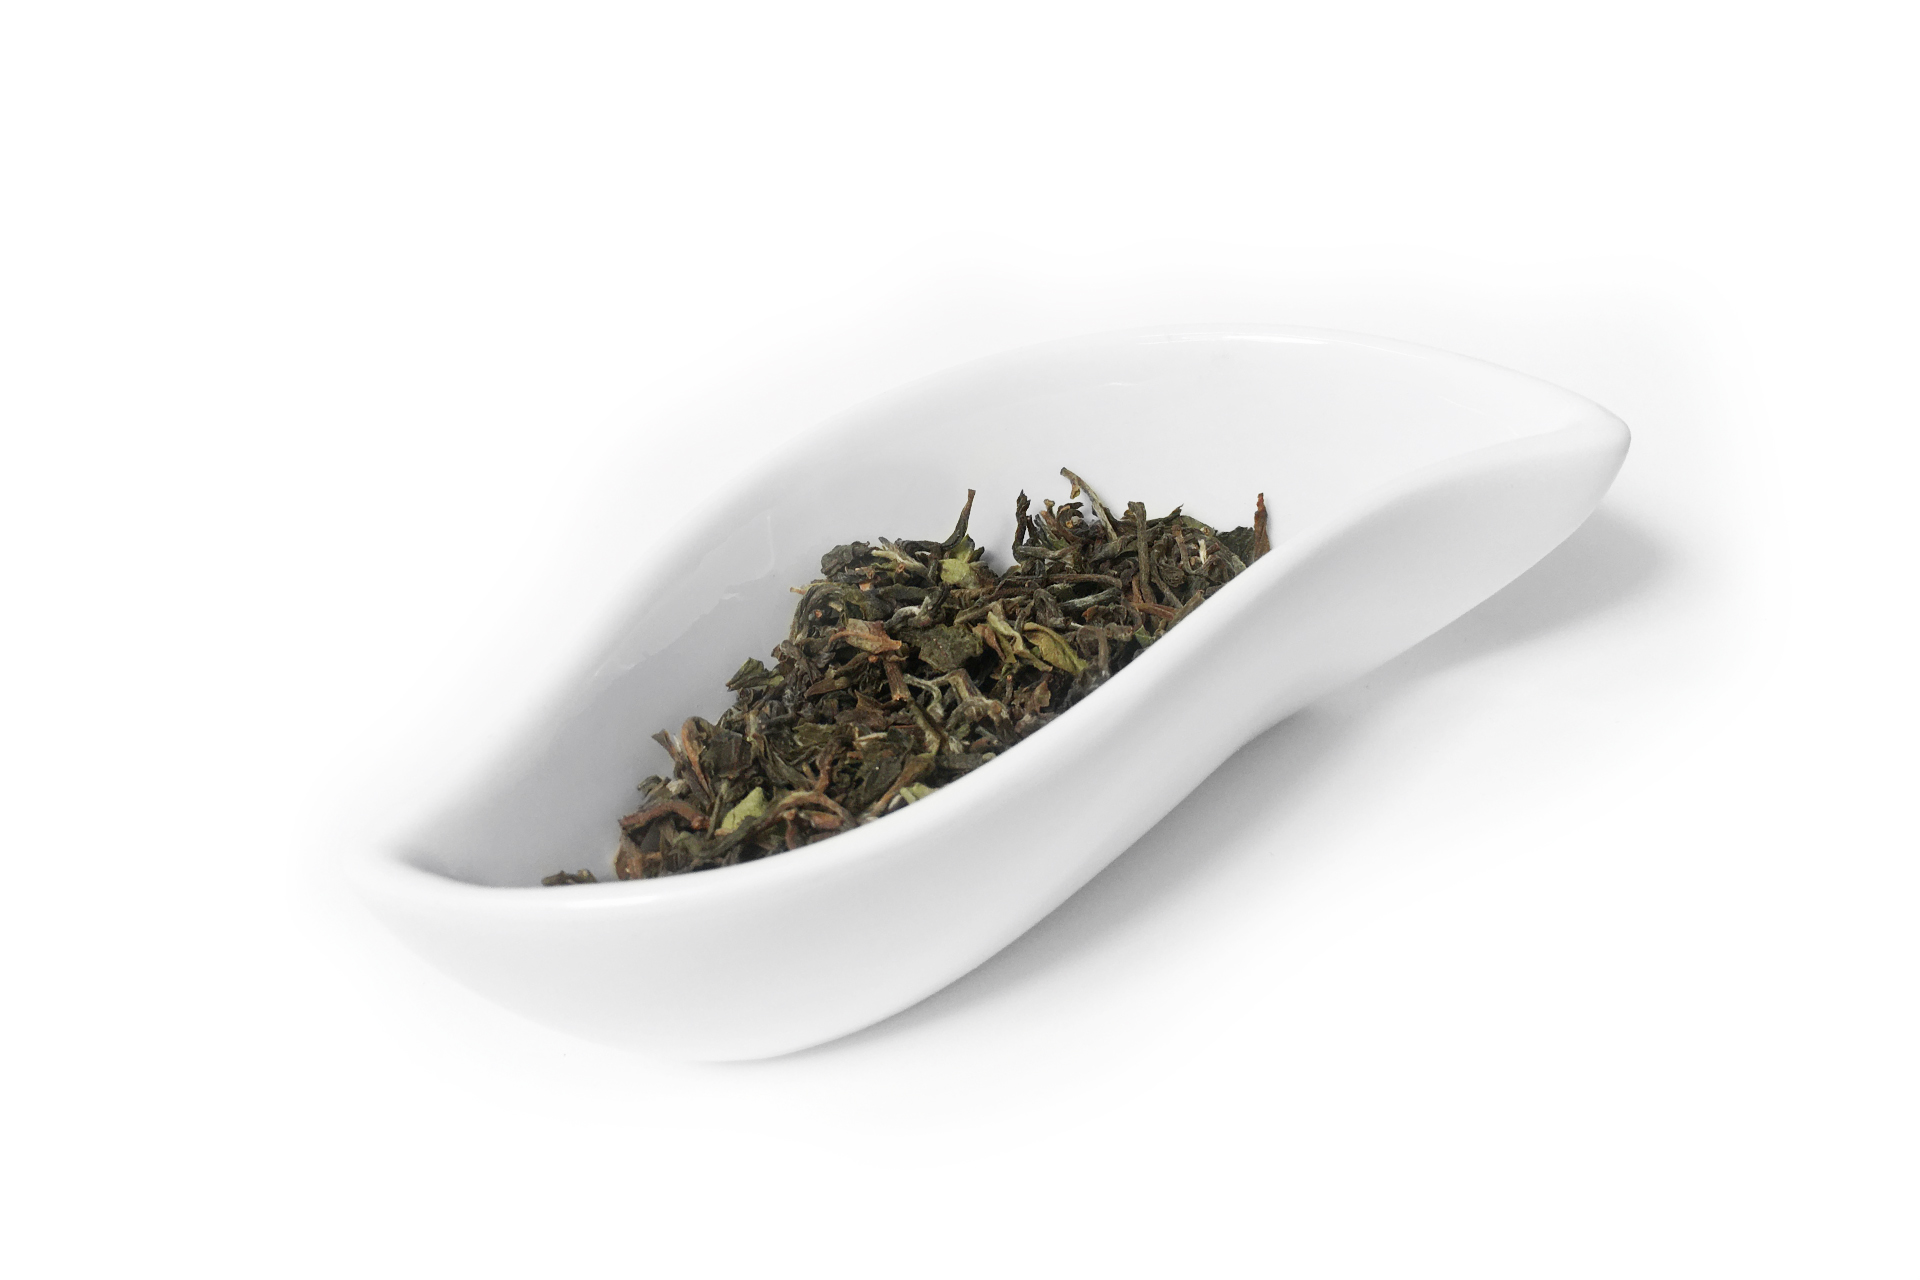 Darjeeling Puttabong Queen FIRST FLUSH - SFTGFOP 1 CL Darjeeling Puttabong Queen FIRST FLUSH SFTGFOP 1 CL